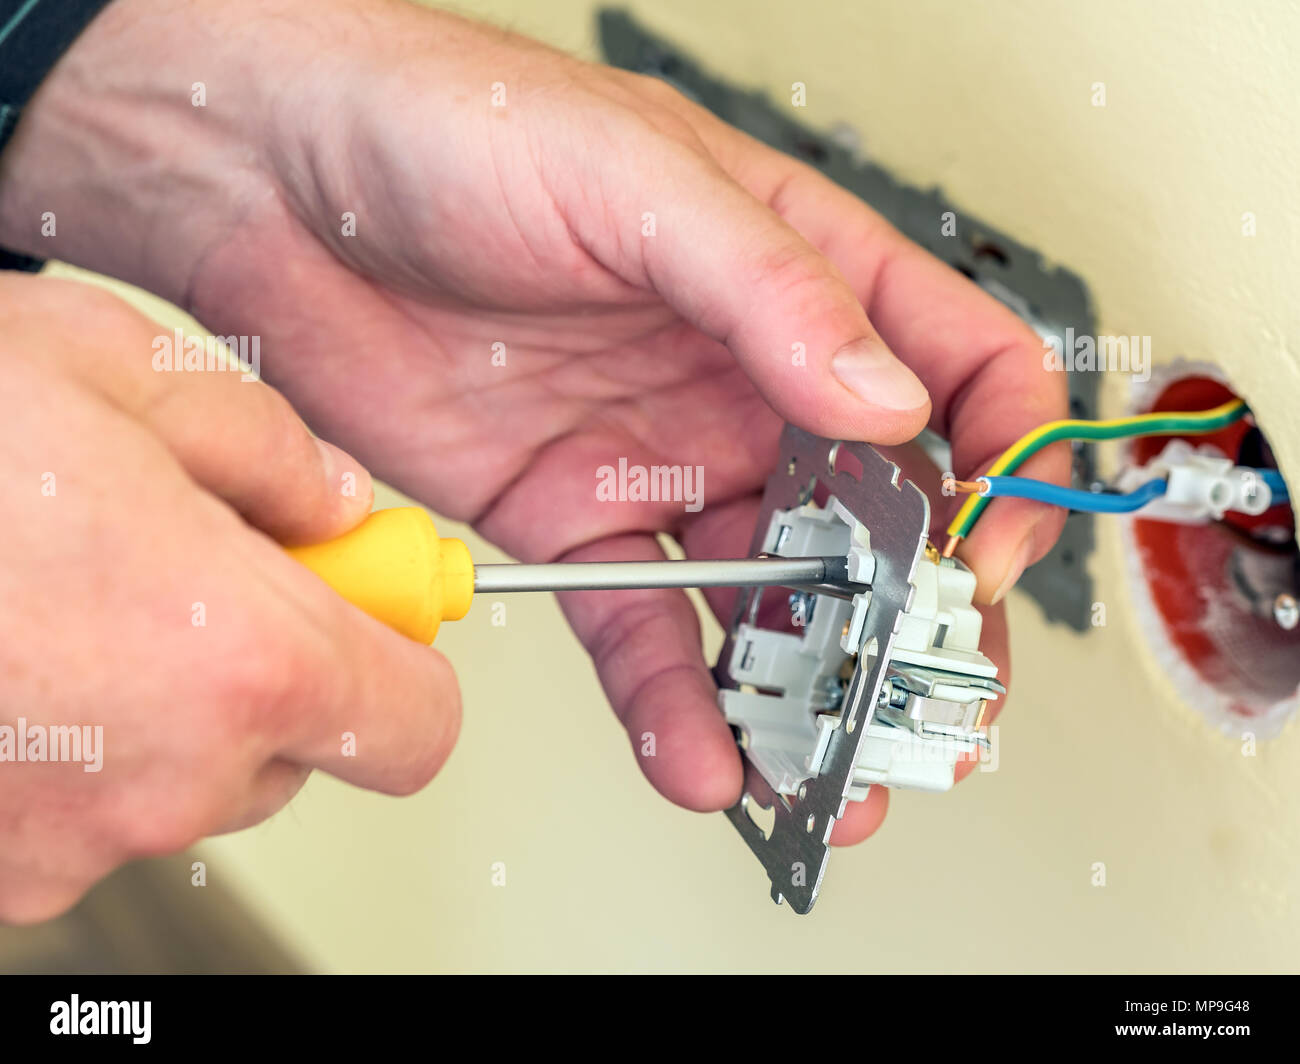 Closeup of electrician's hands installing wall socket Stock Photo